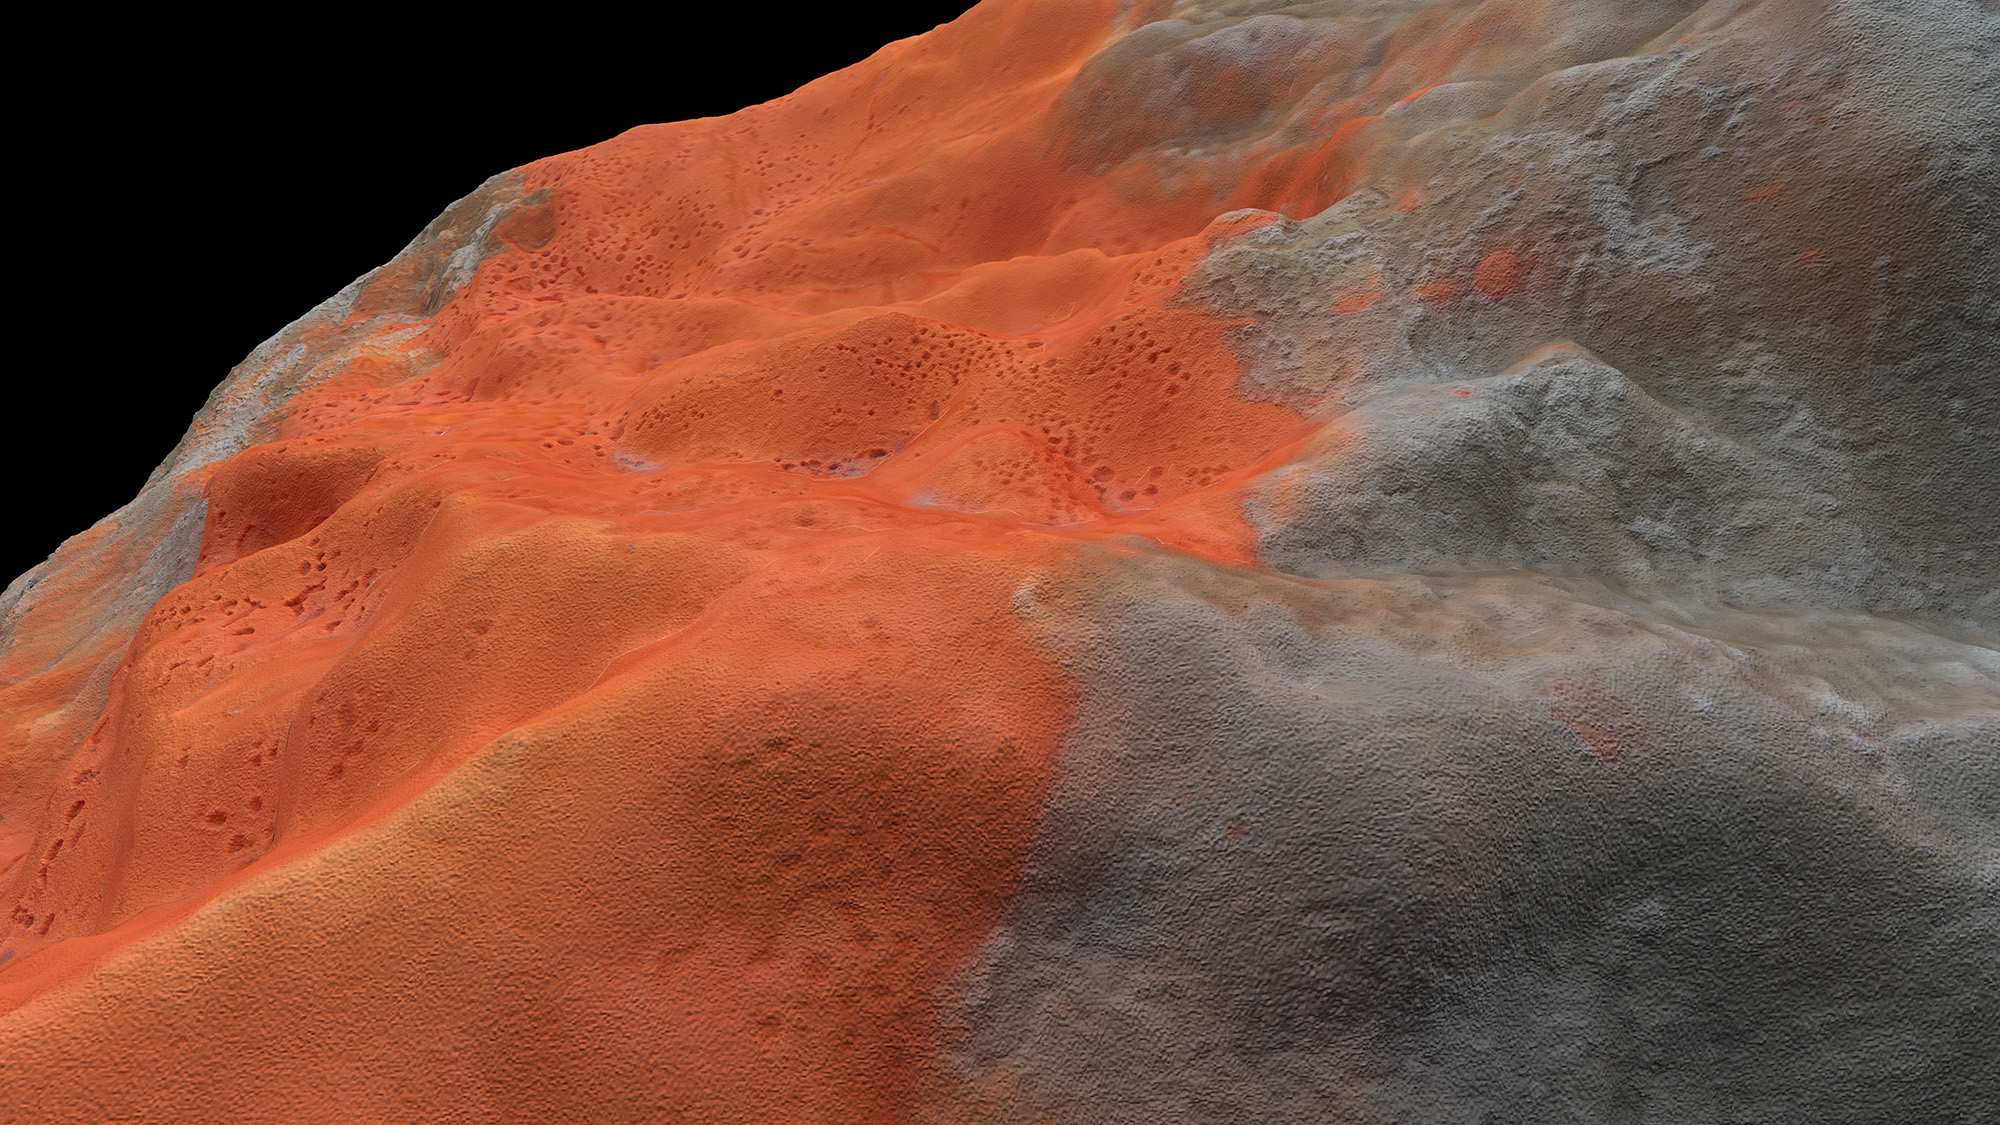 CGI visual of a limestone collected at Le Mormont using photogrammetry 3D based modeling technology, developed in collaboration with Valle Medina and Benjamin Reynolds (Pa.LaC.E), 2020